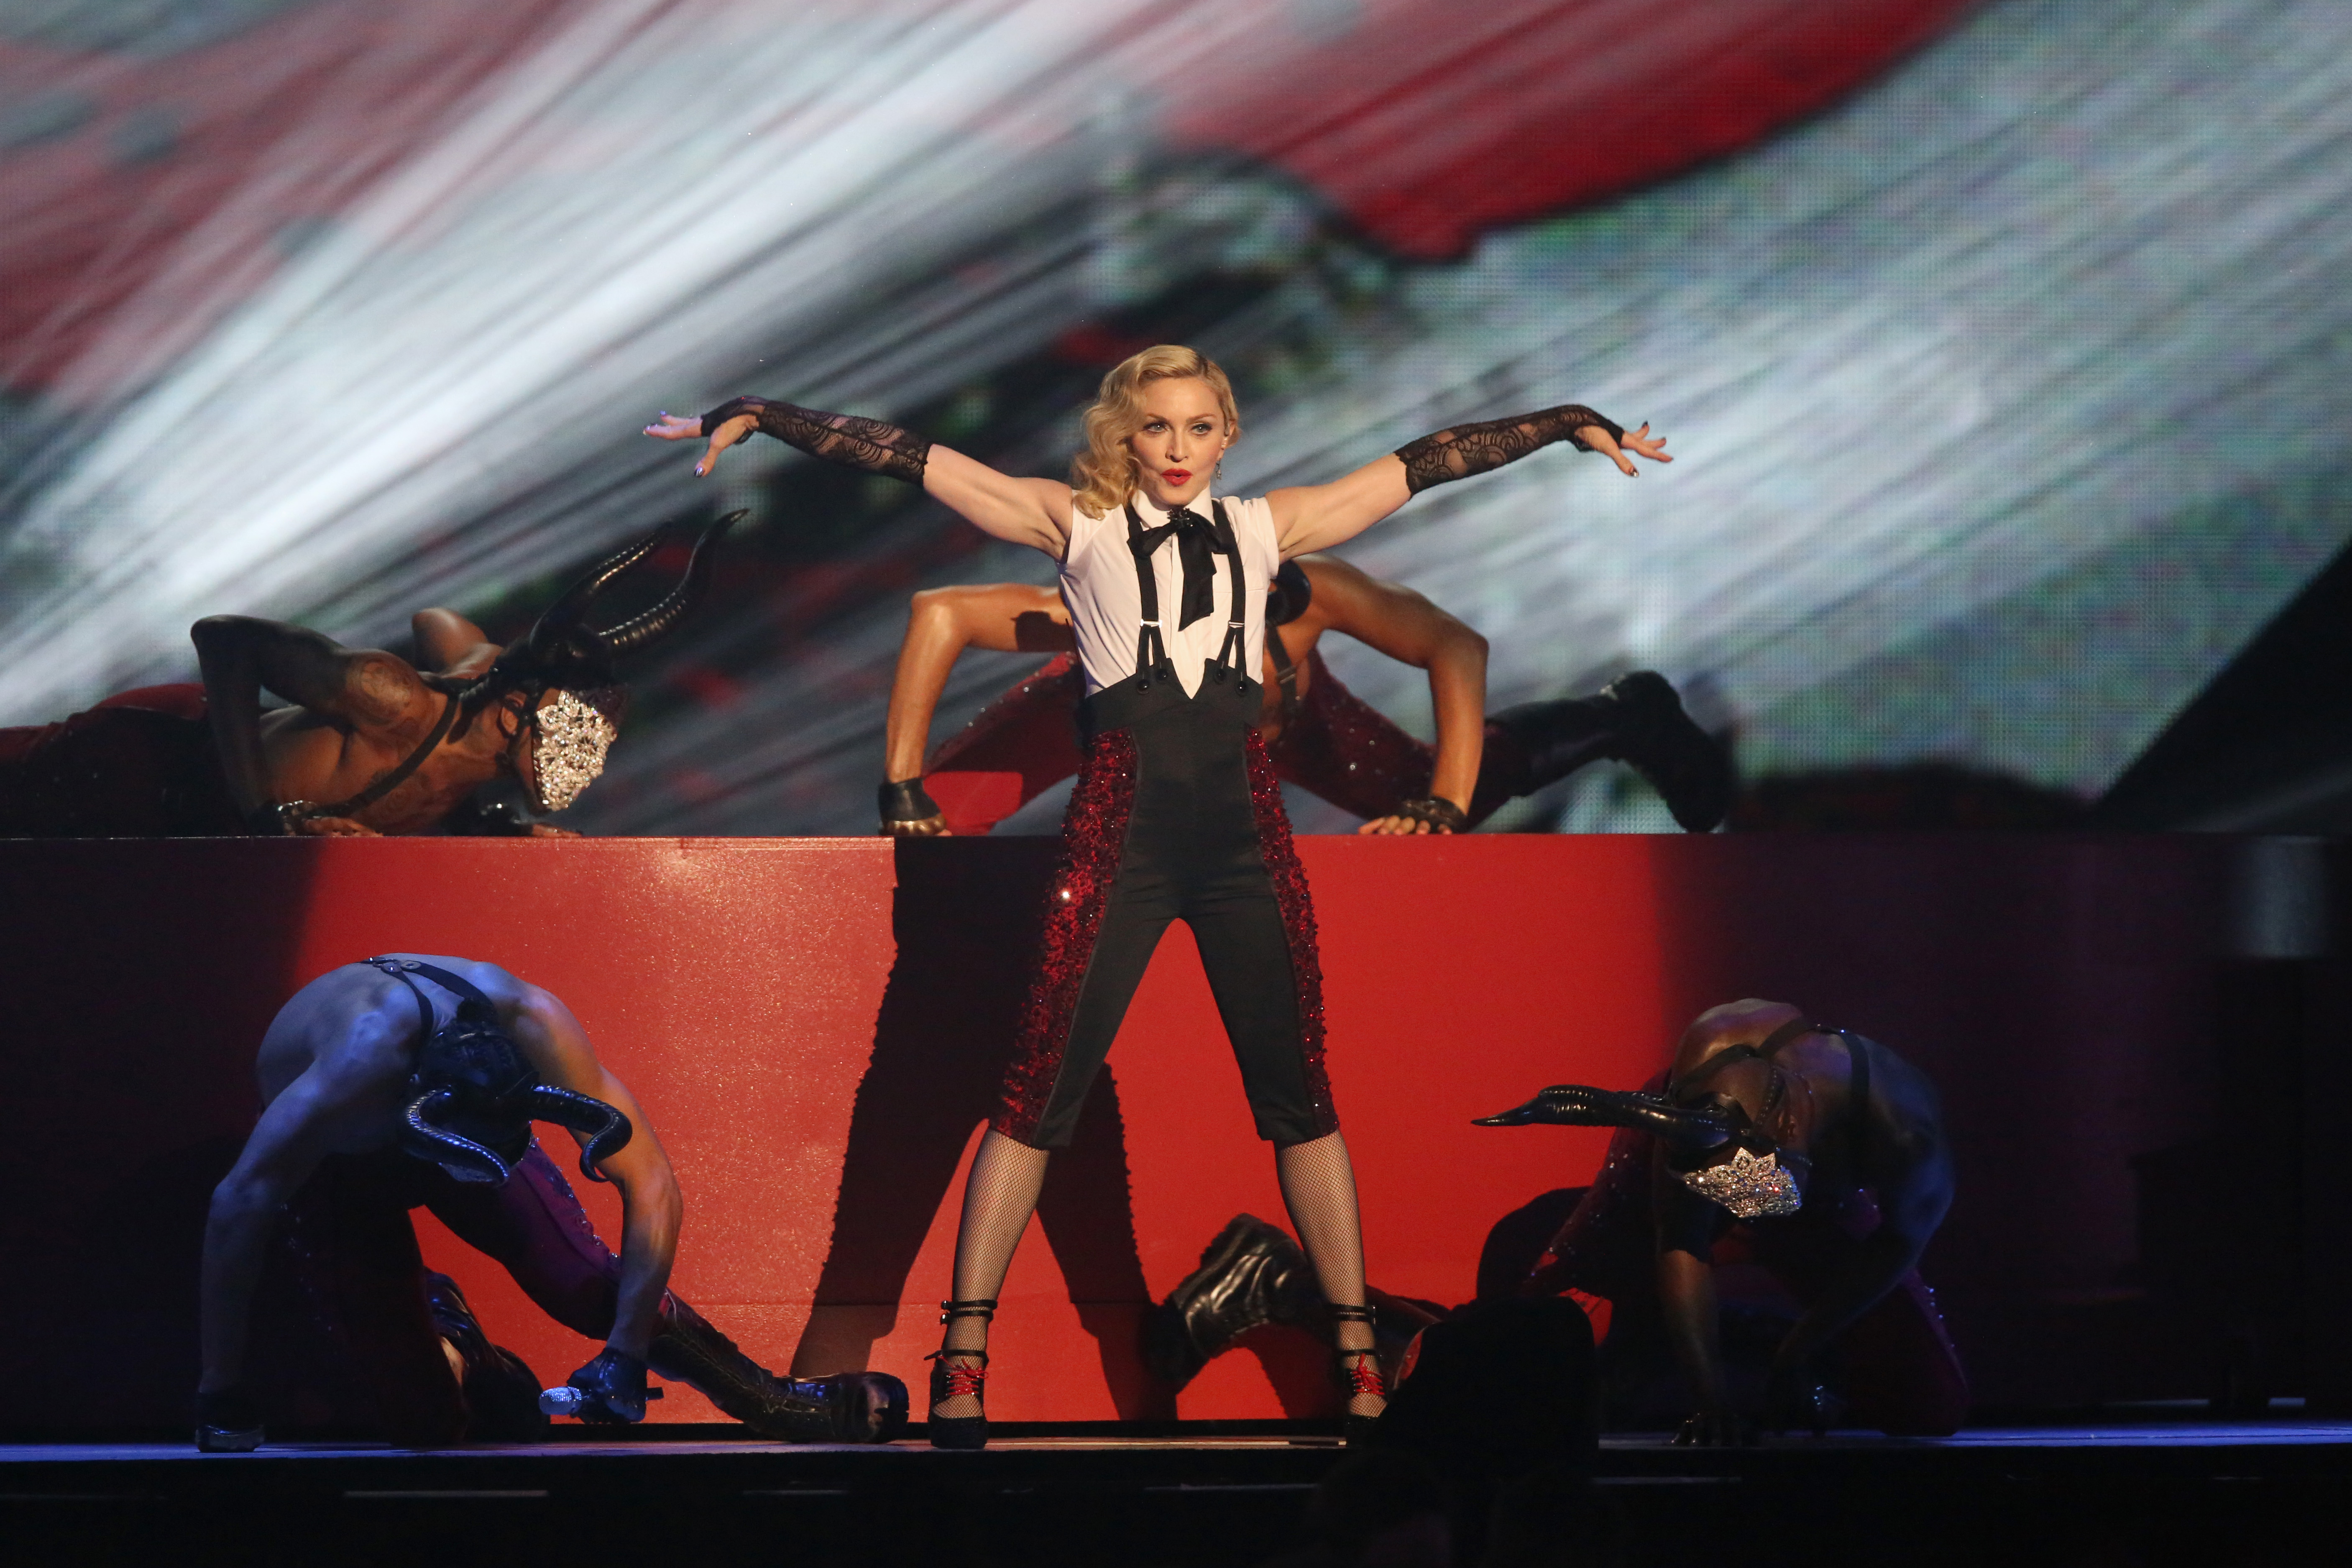 From Madonna to Jason Aldean: 8 eclectic concerts to hit this week in DC area